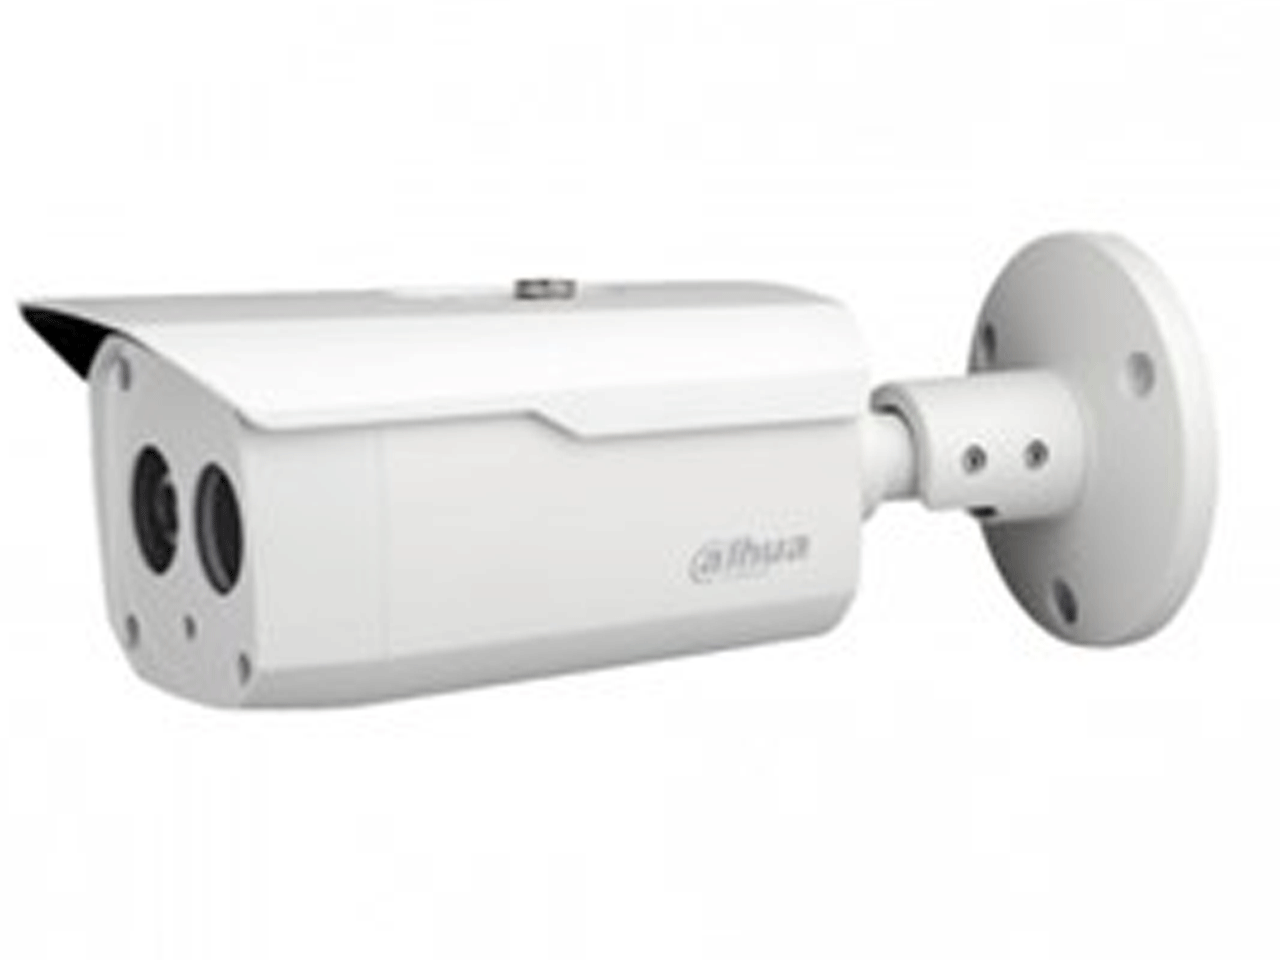 DAHUA IPC-HFW4421BP-BAS 4 MP FULL HD WDR IR BULLET IP KAMERA - SES GİRİŞLİ